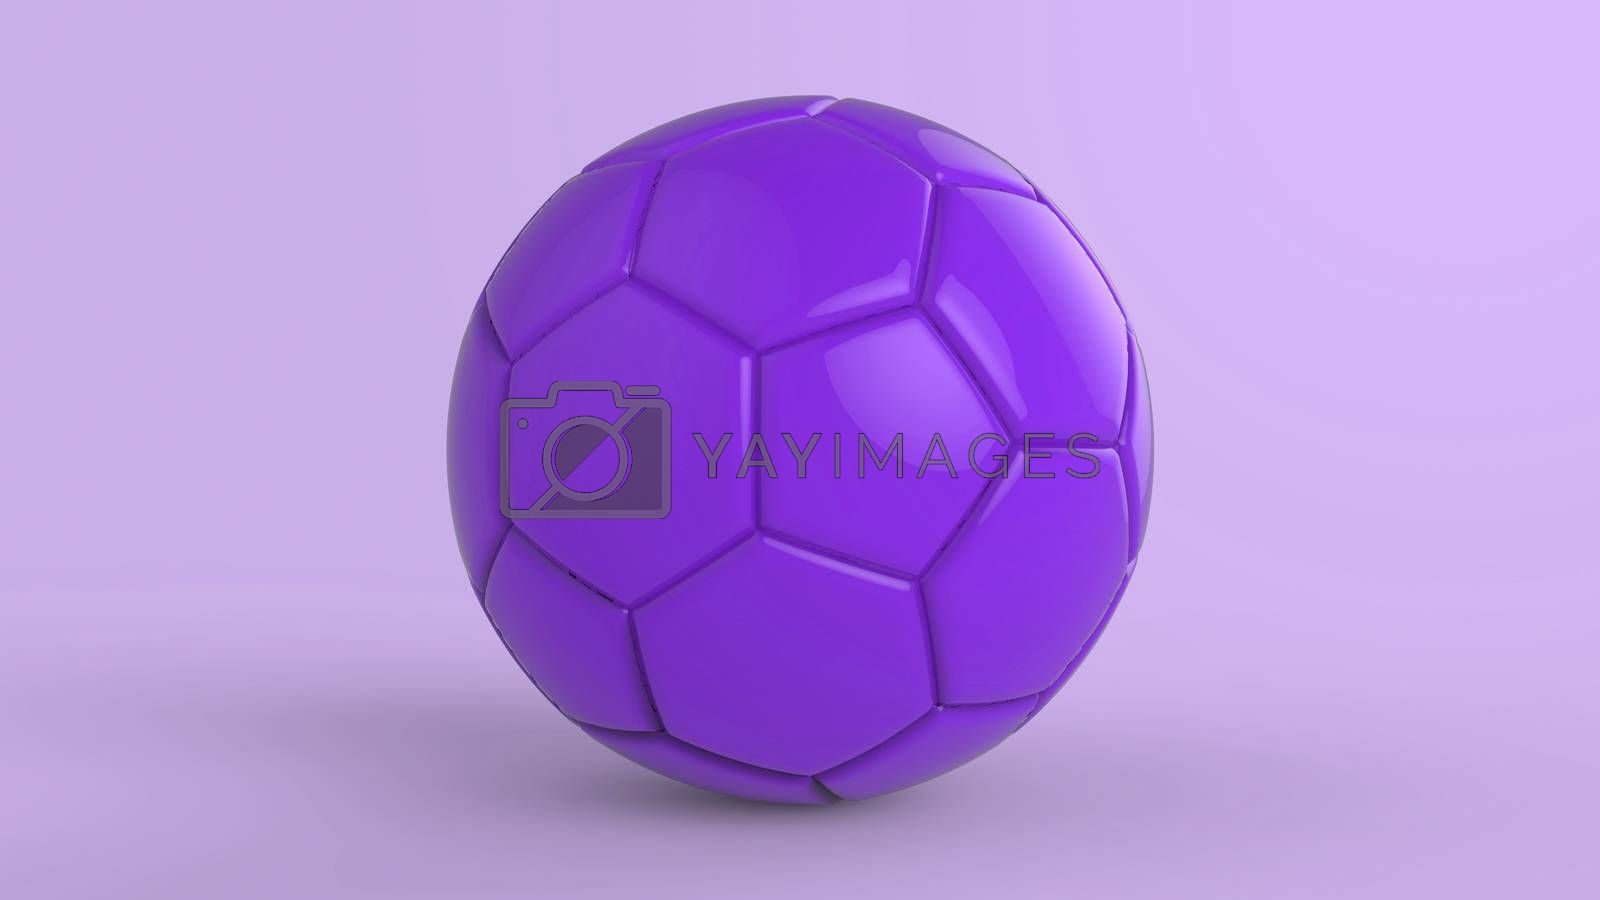 violet soccer plastic leather metal fabric ball isolated on black background. Football 3d render illustration.